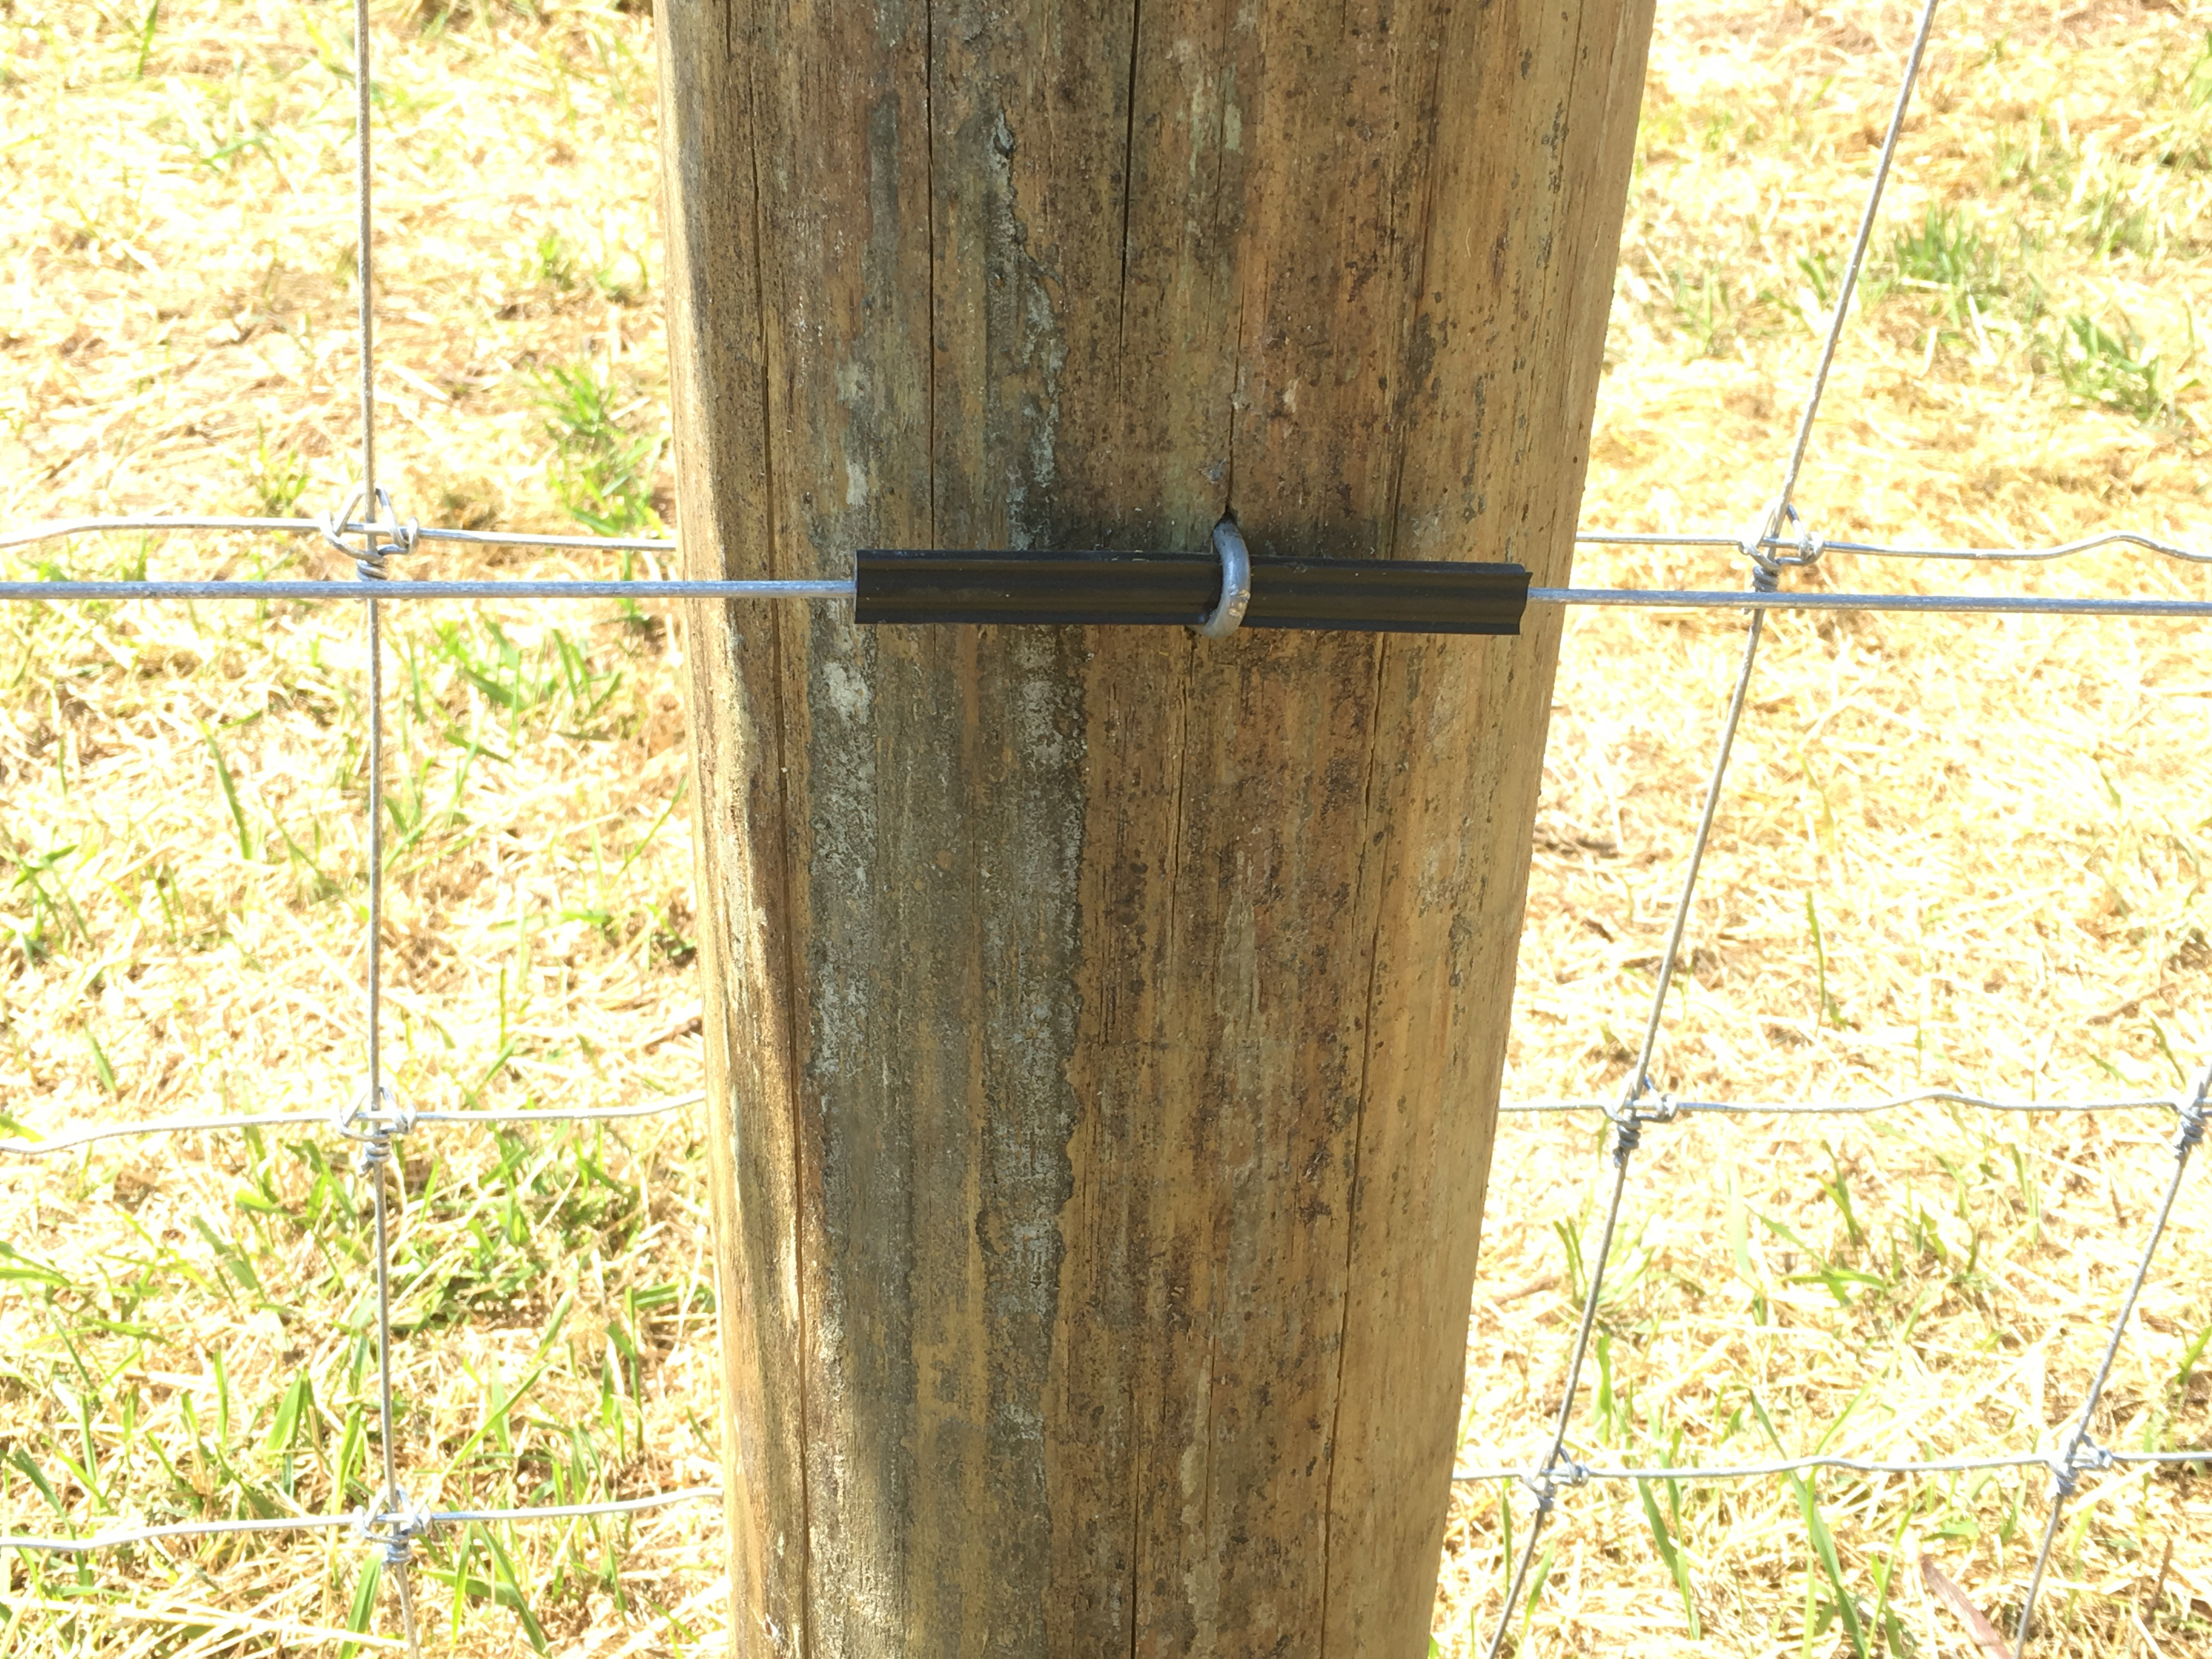 High Tensile Electric wire attached to post with rubber insulator.